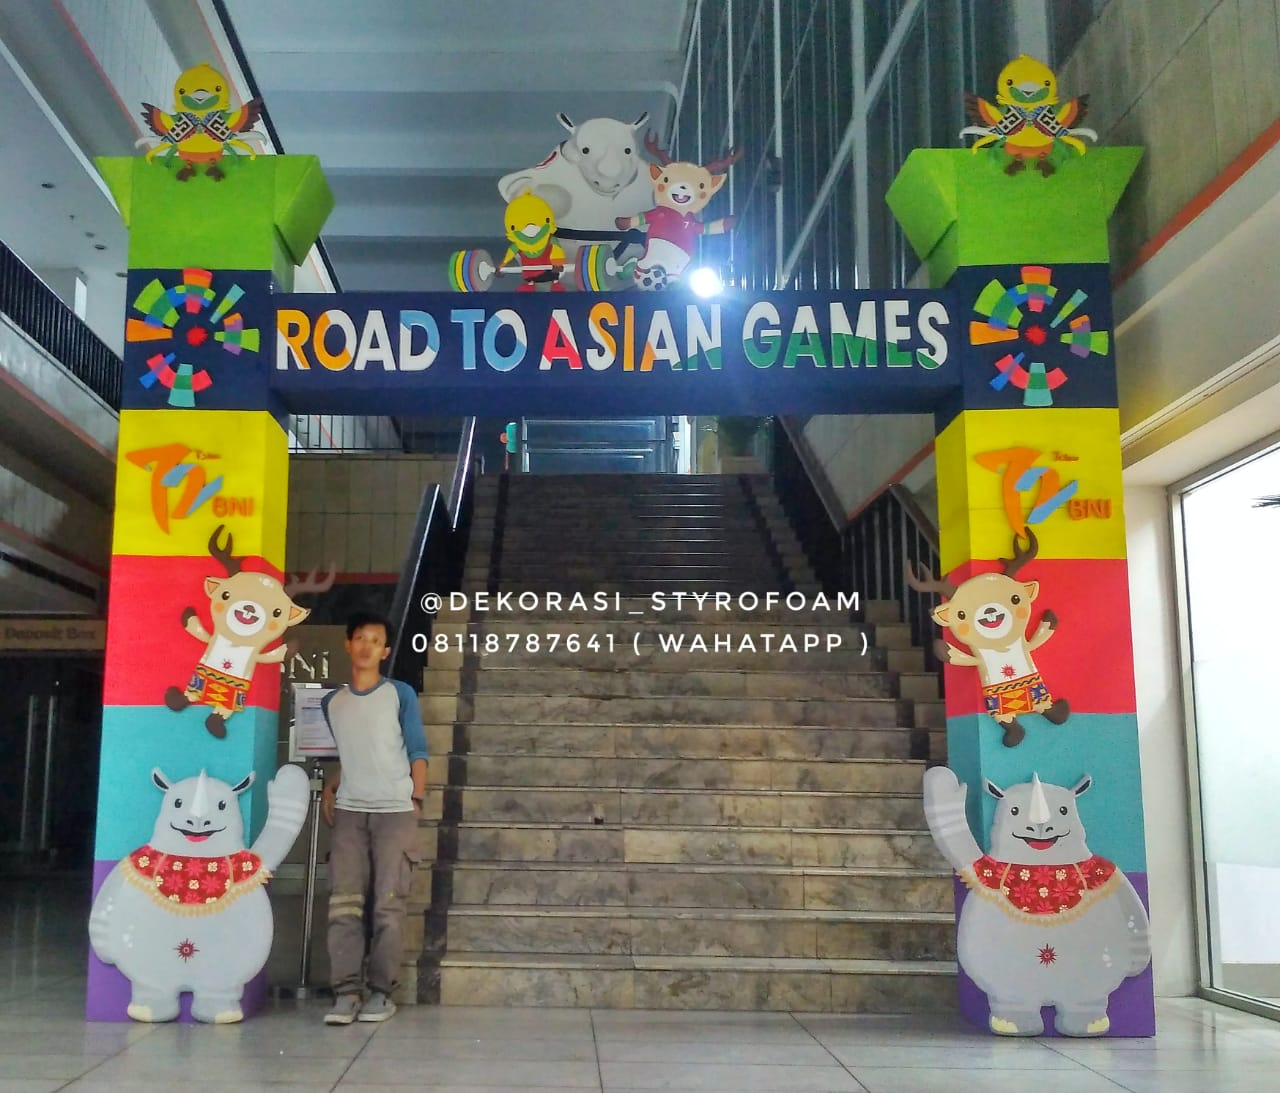 gapura Asian games Styrofoam